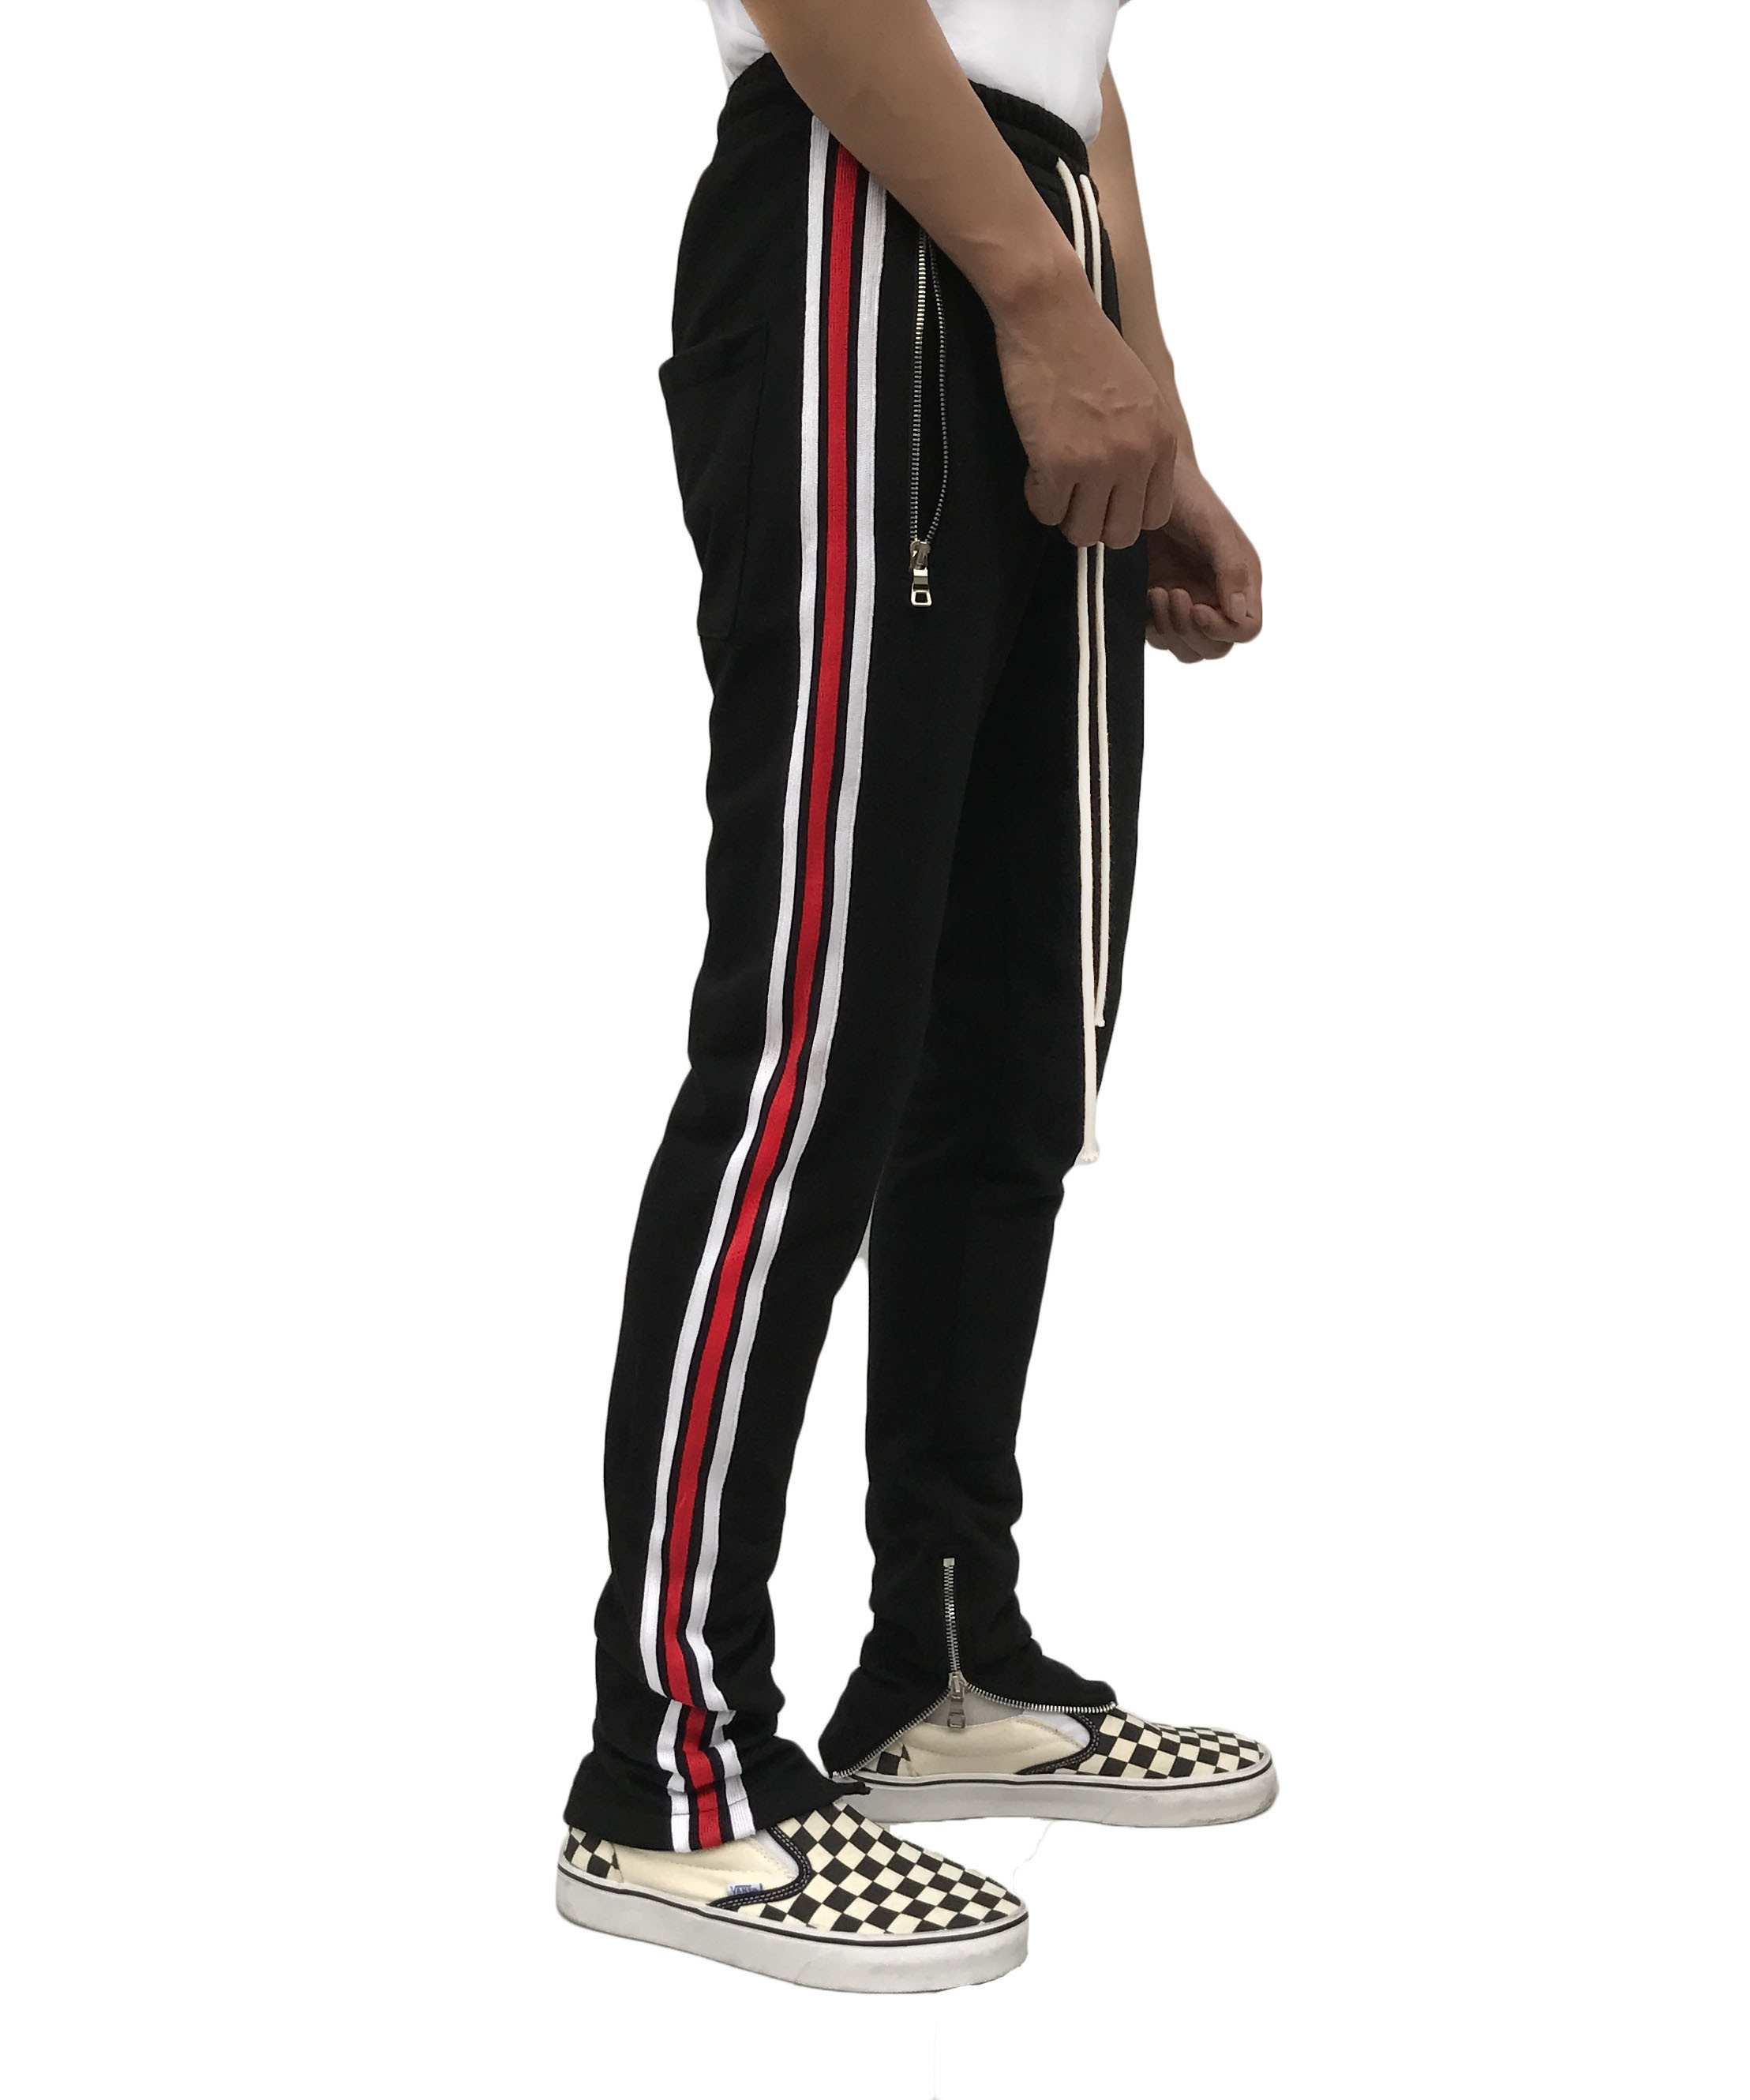 Side striped Track Pant V2